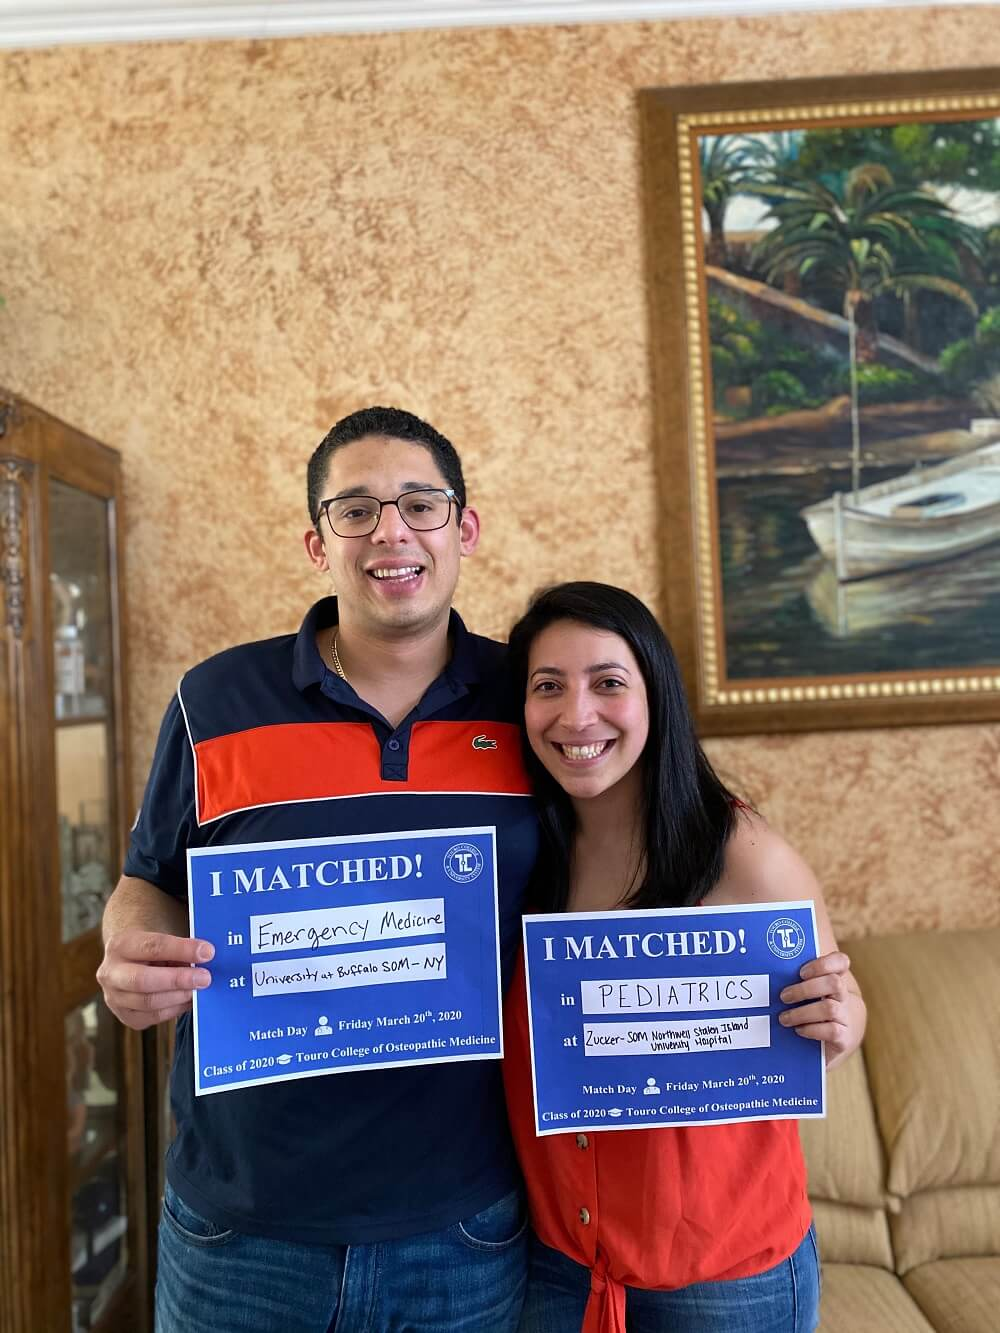 TouroCOM students Brandon Chavez and Stephanie Morales